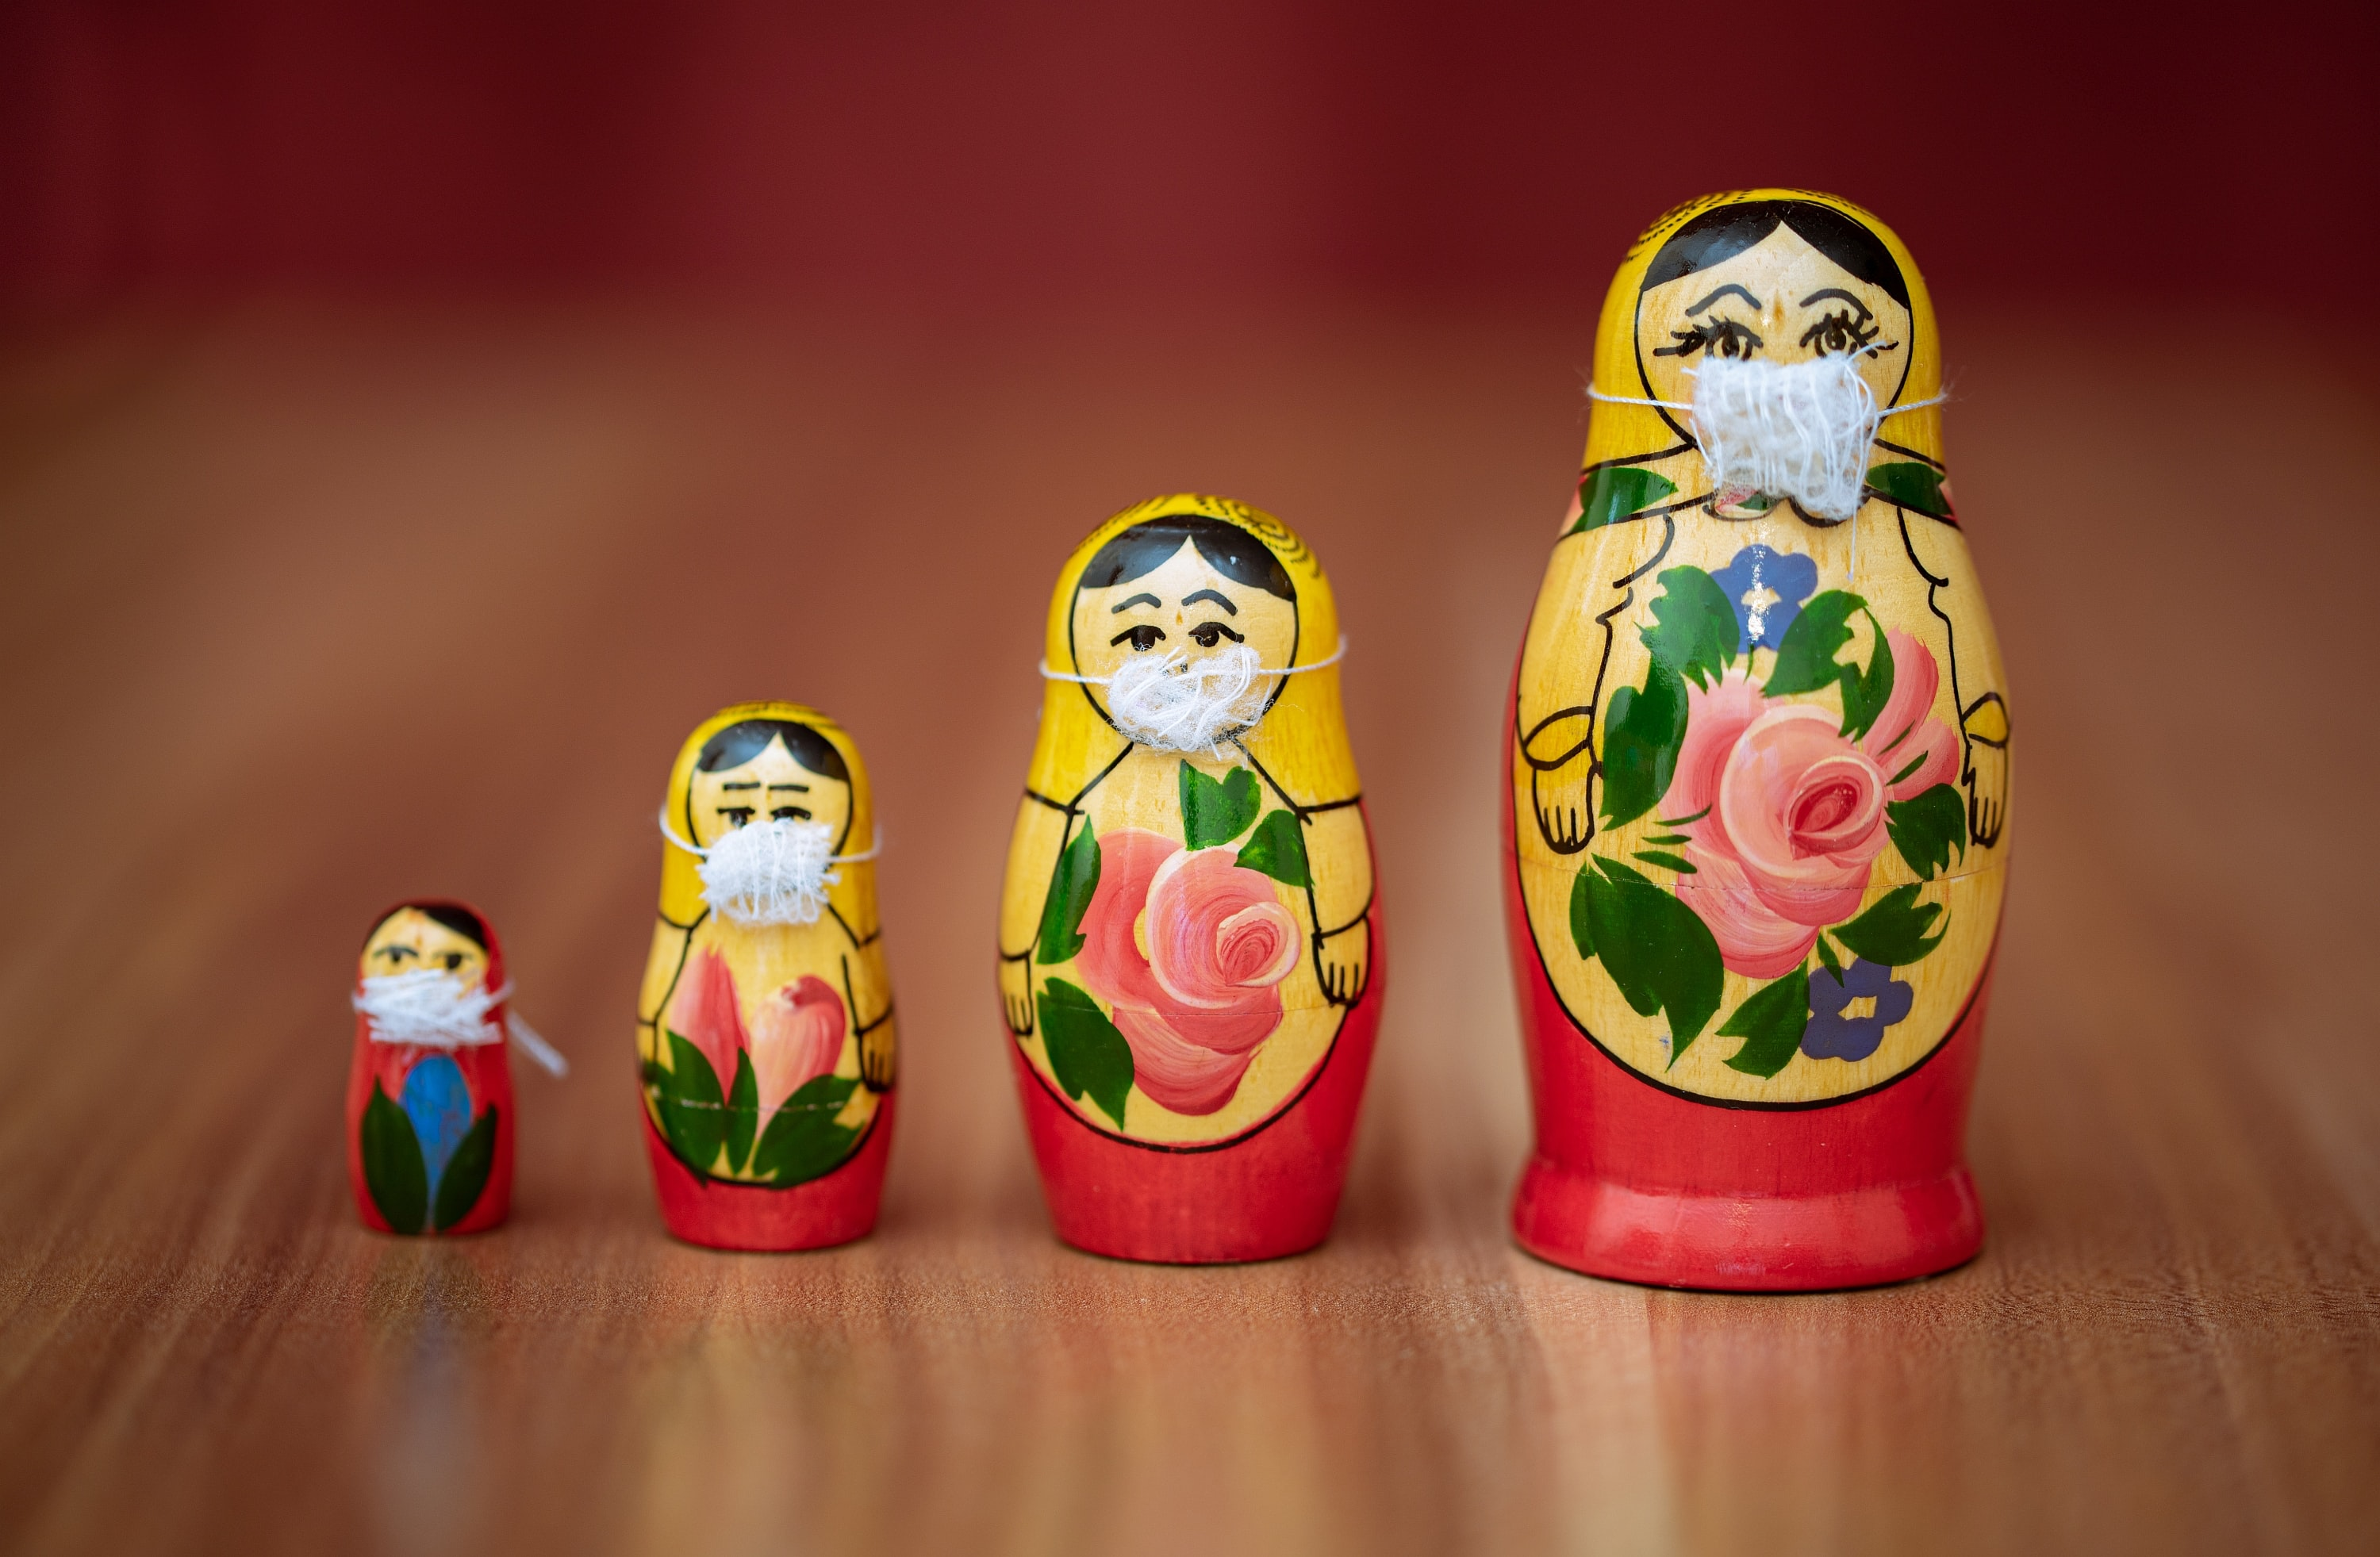 Four Russian nesting dolls wearing medical masks.